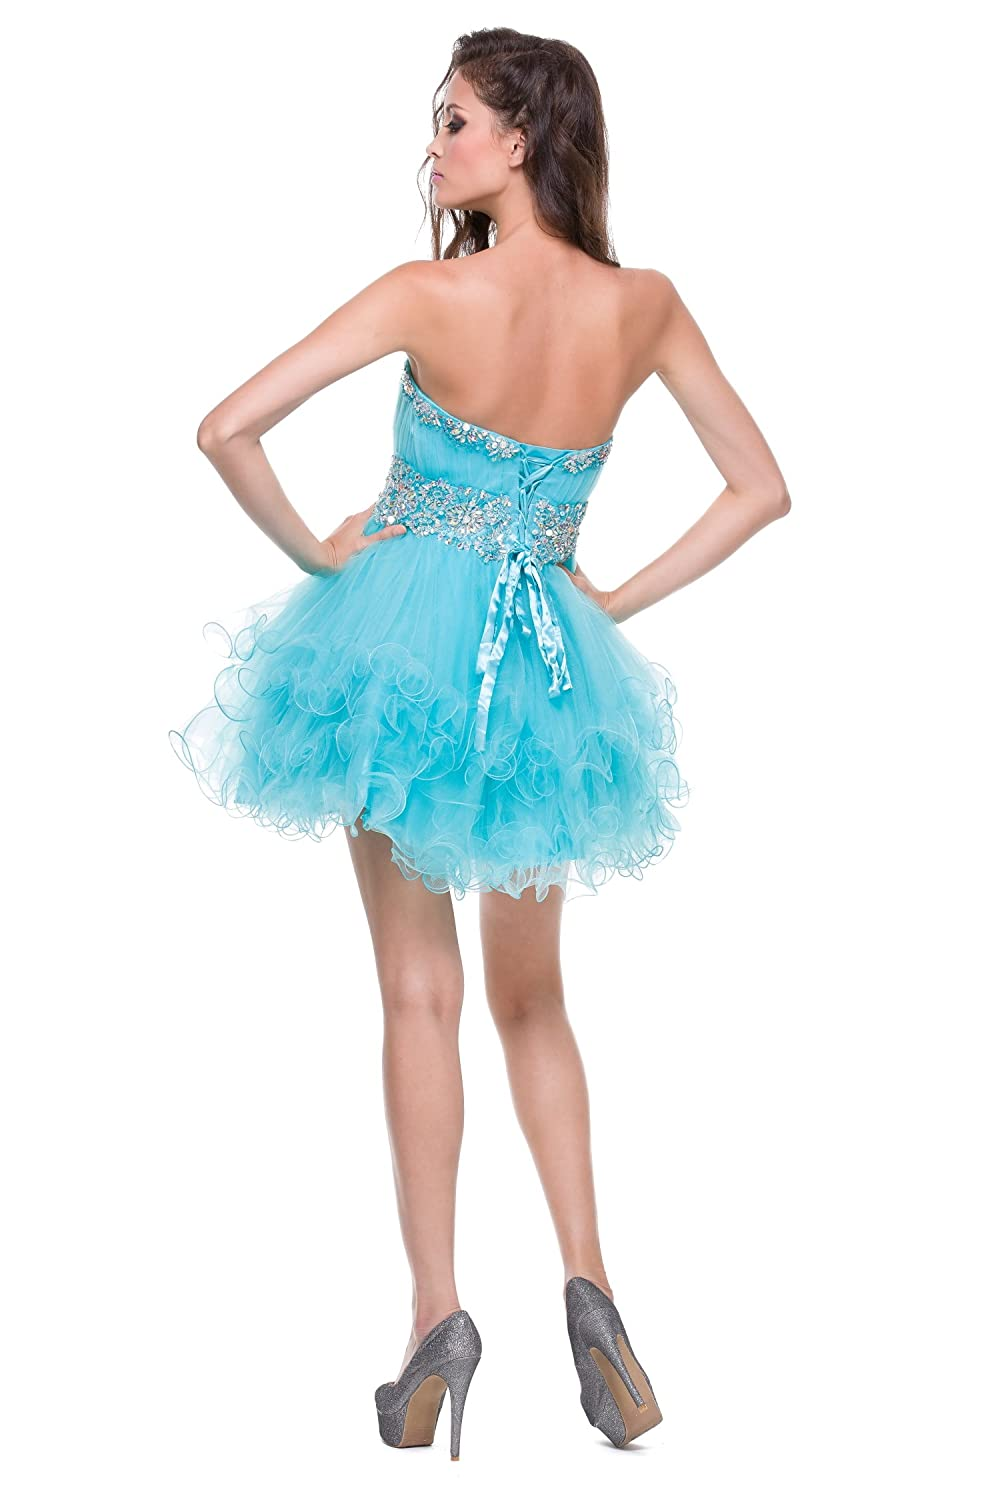 Juliet Dresses Womens Short tulle dress 703J at Amazon Womens Clothing store: